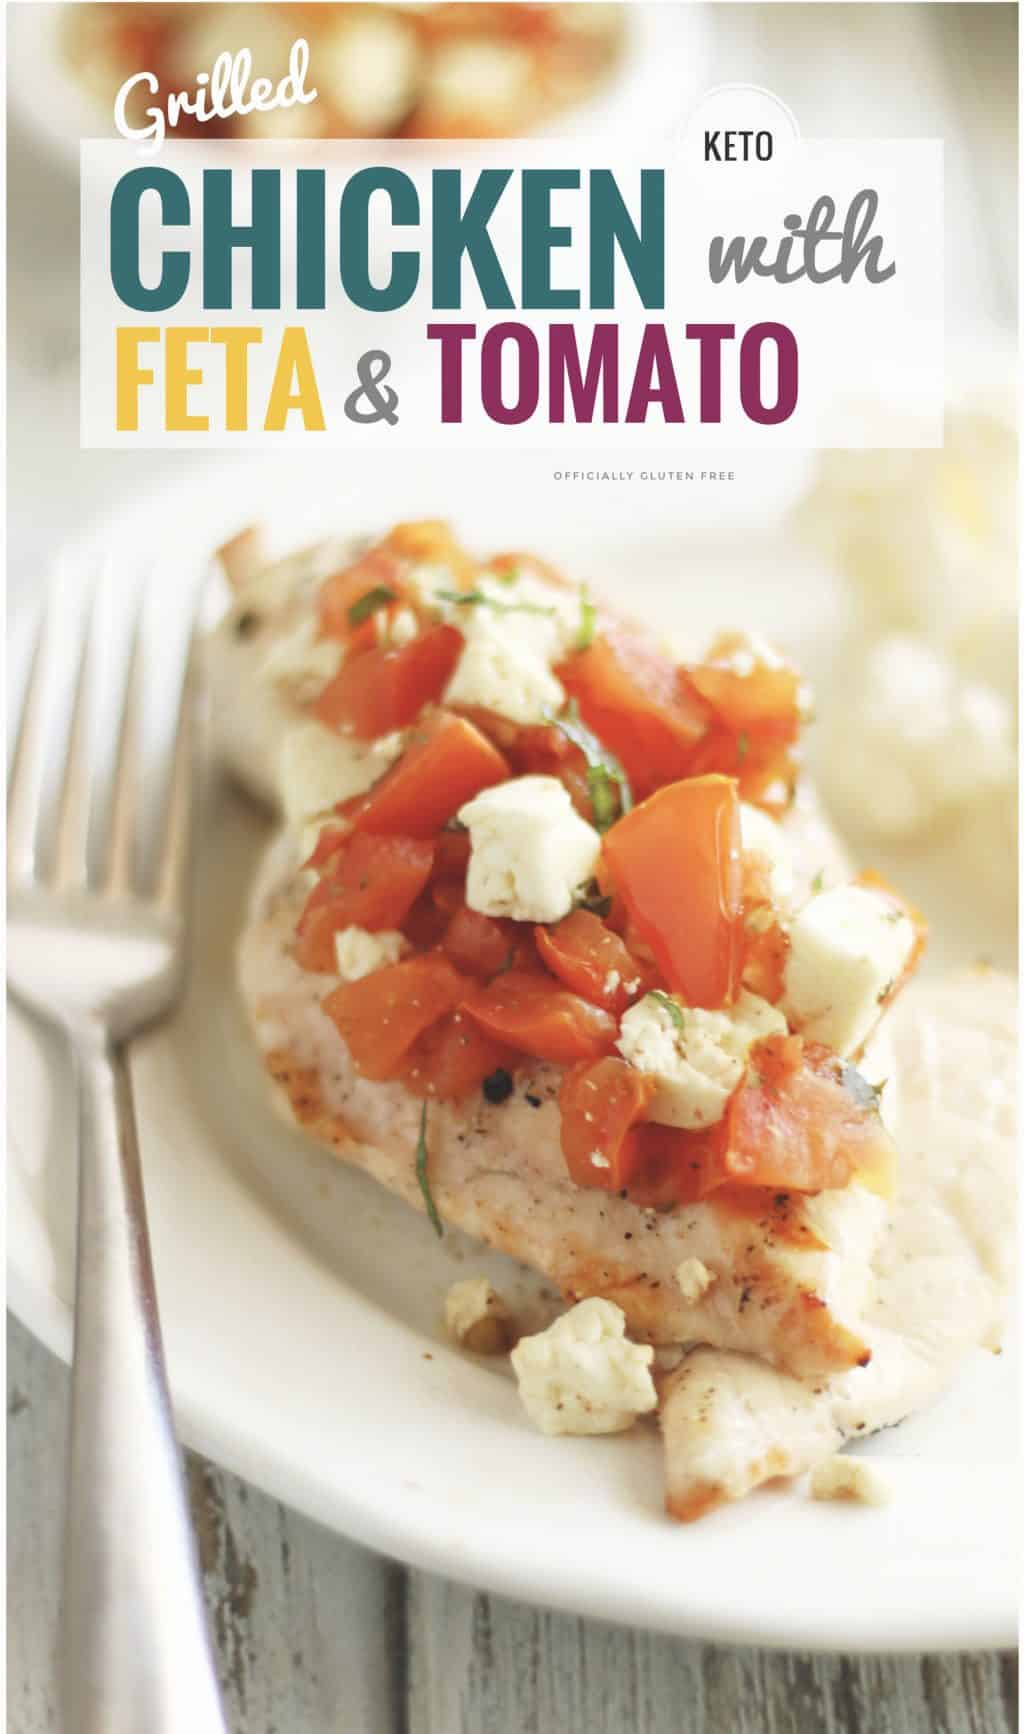 Grilled Chicken with Feta and Tomato